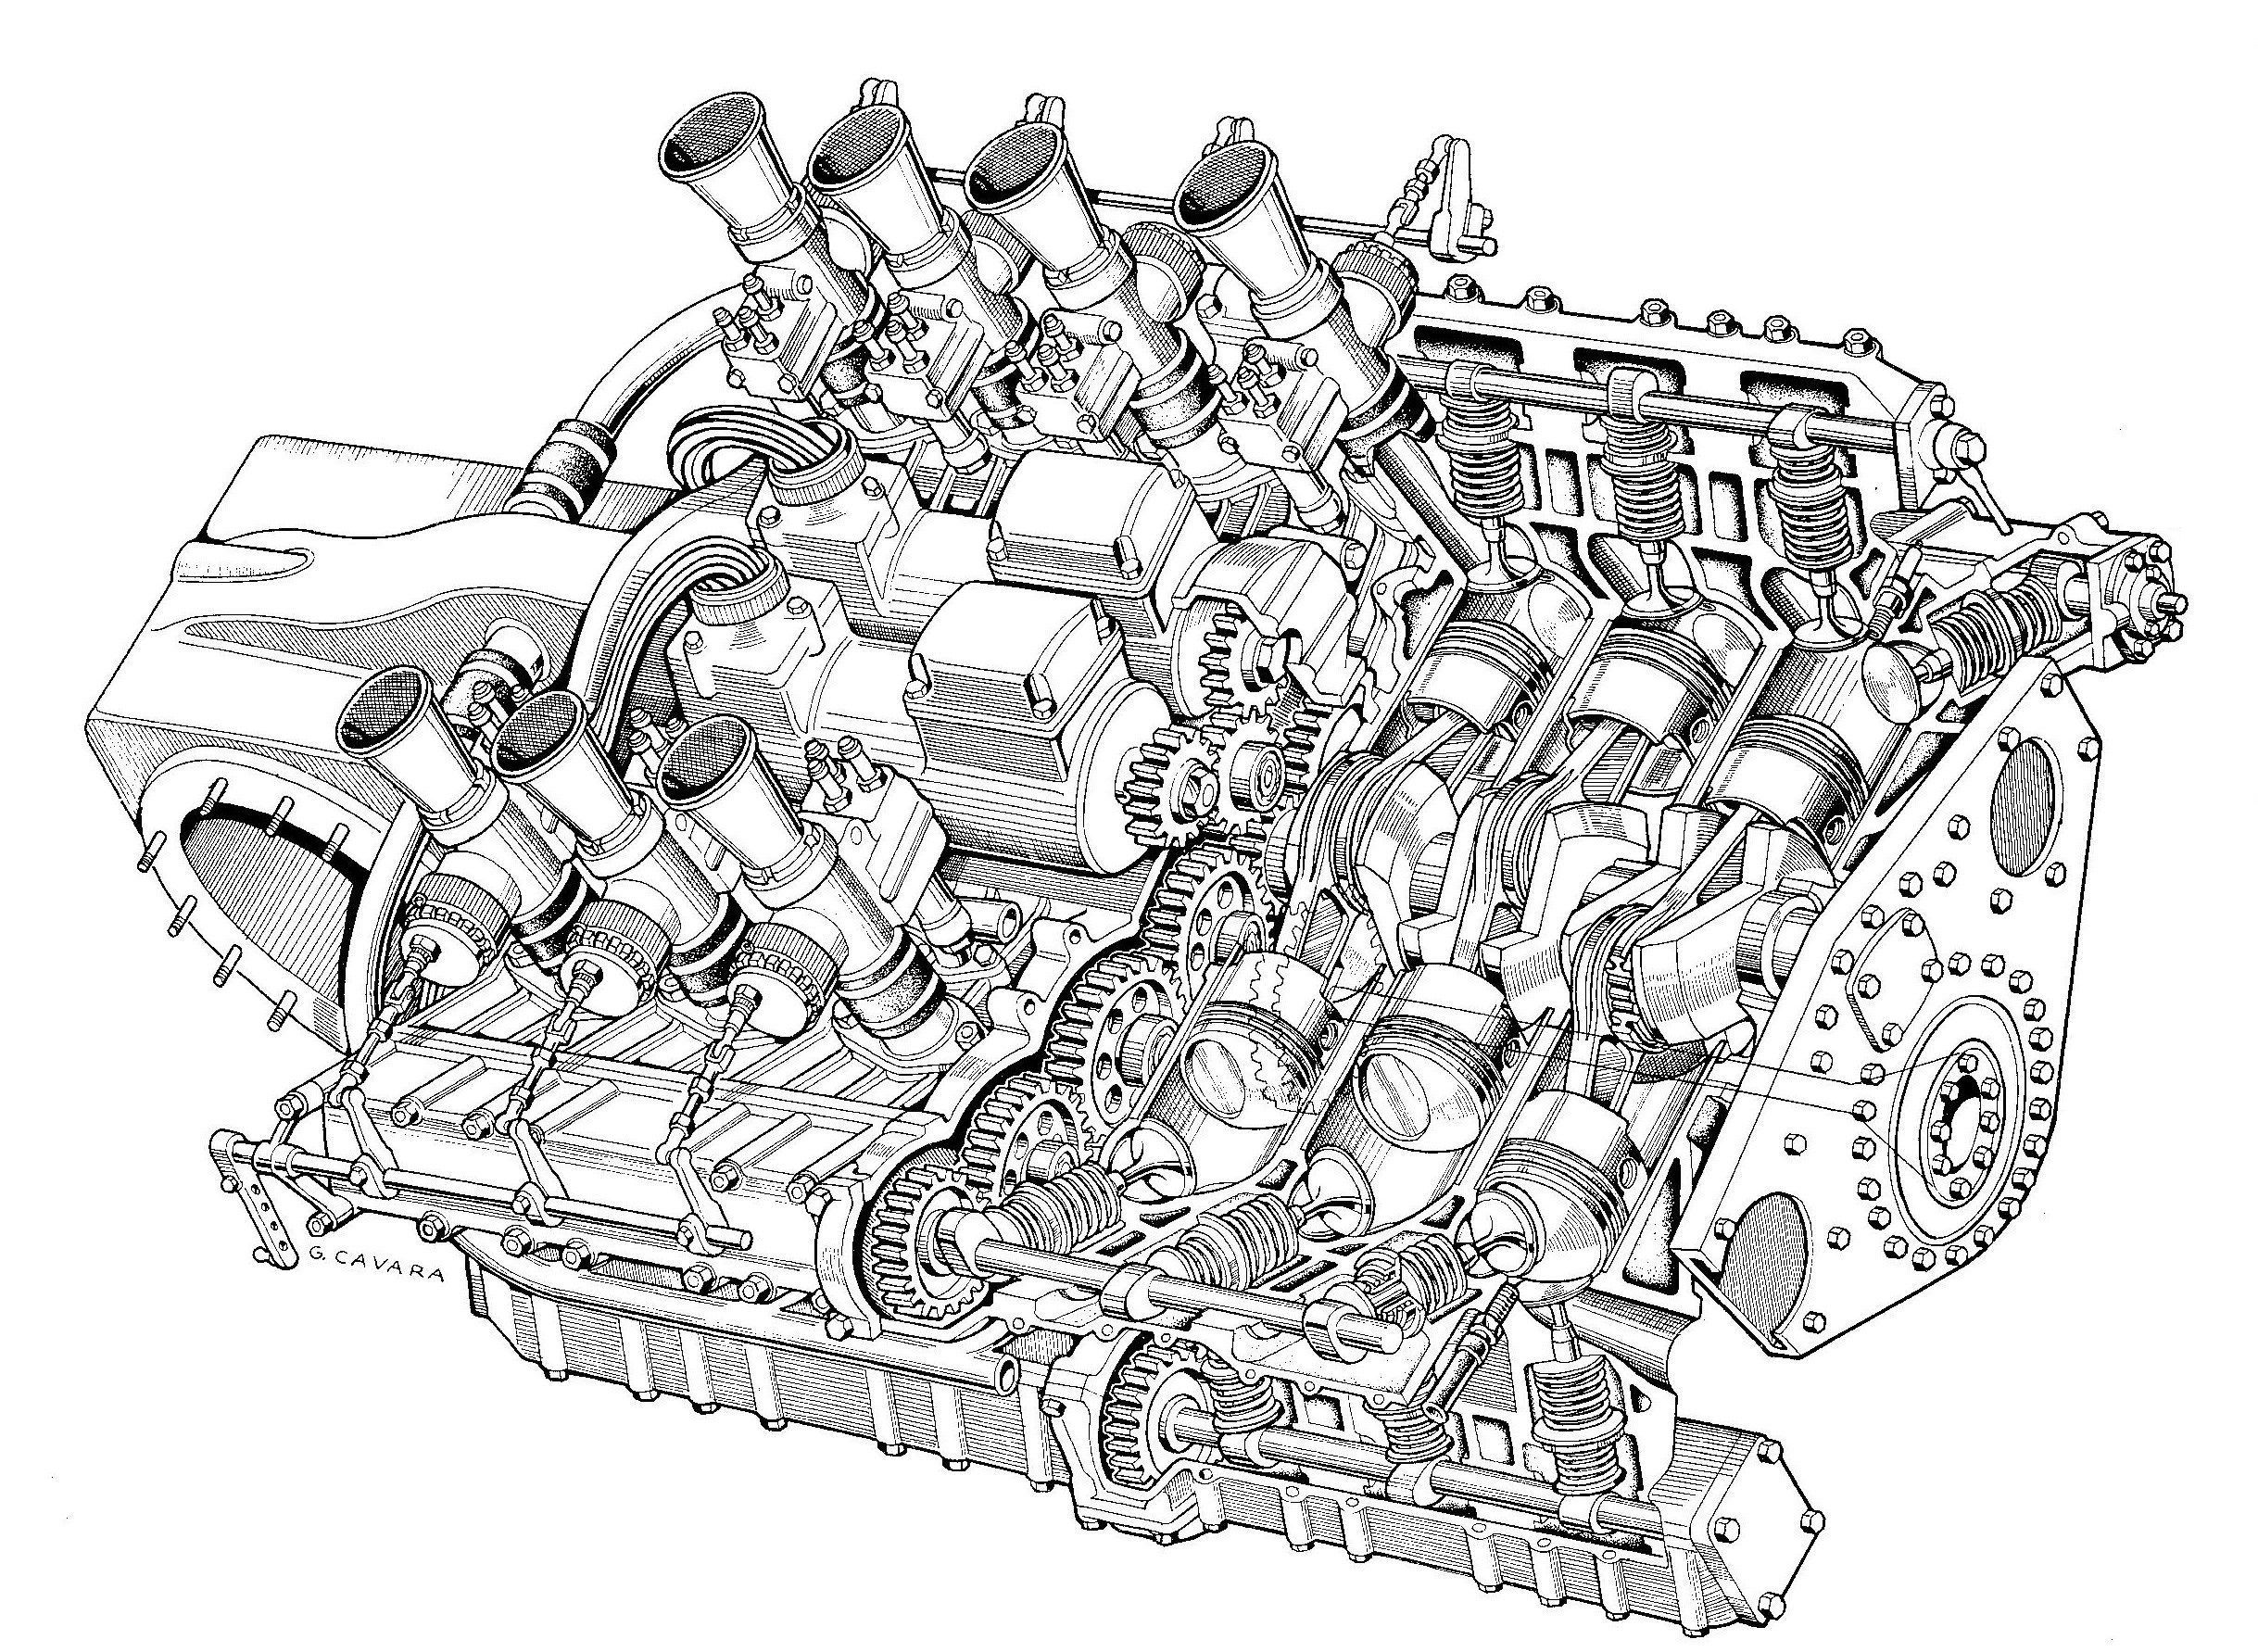 hight resolution of 2 500cc flat 12 alfa romeo engine for the alfetta 160 project of 1952 illustrated by g iovanni cavara